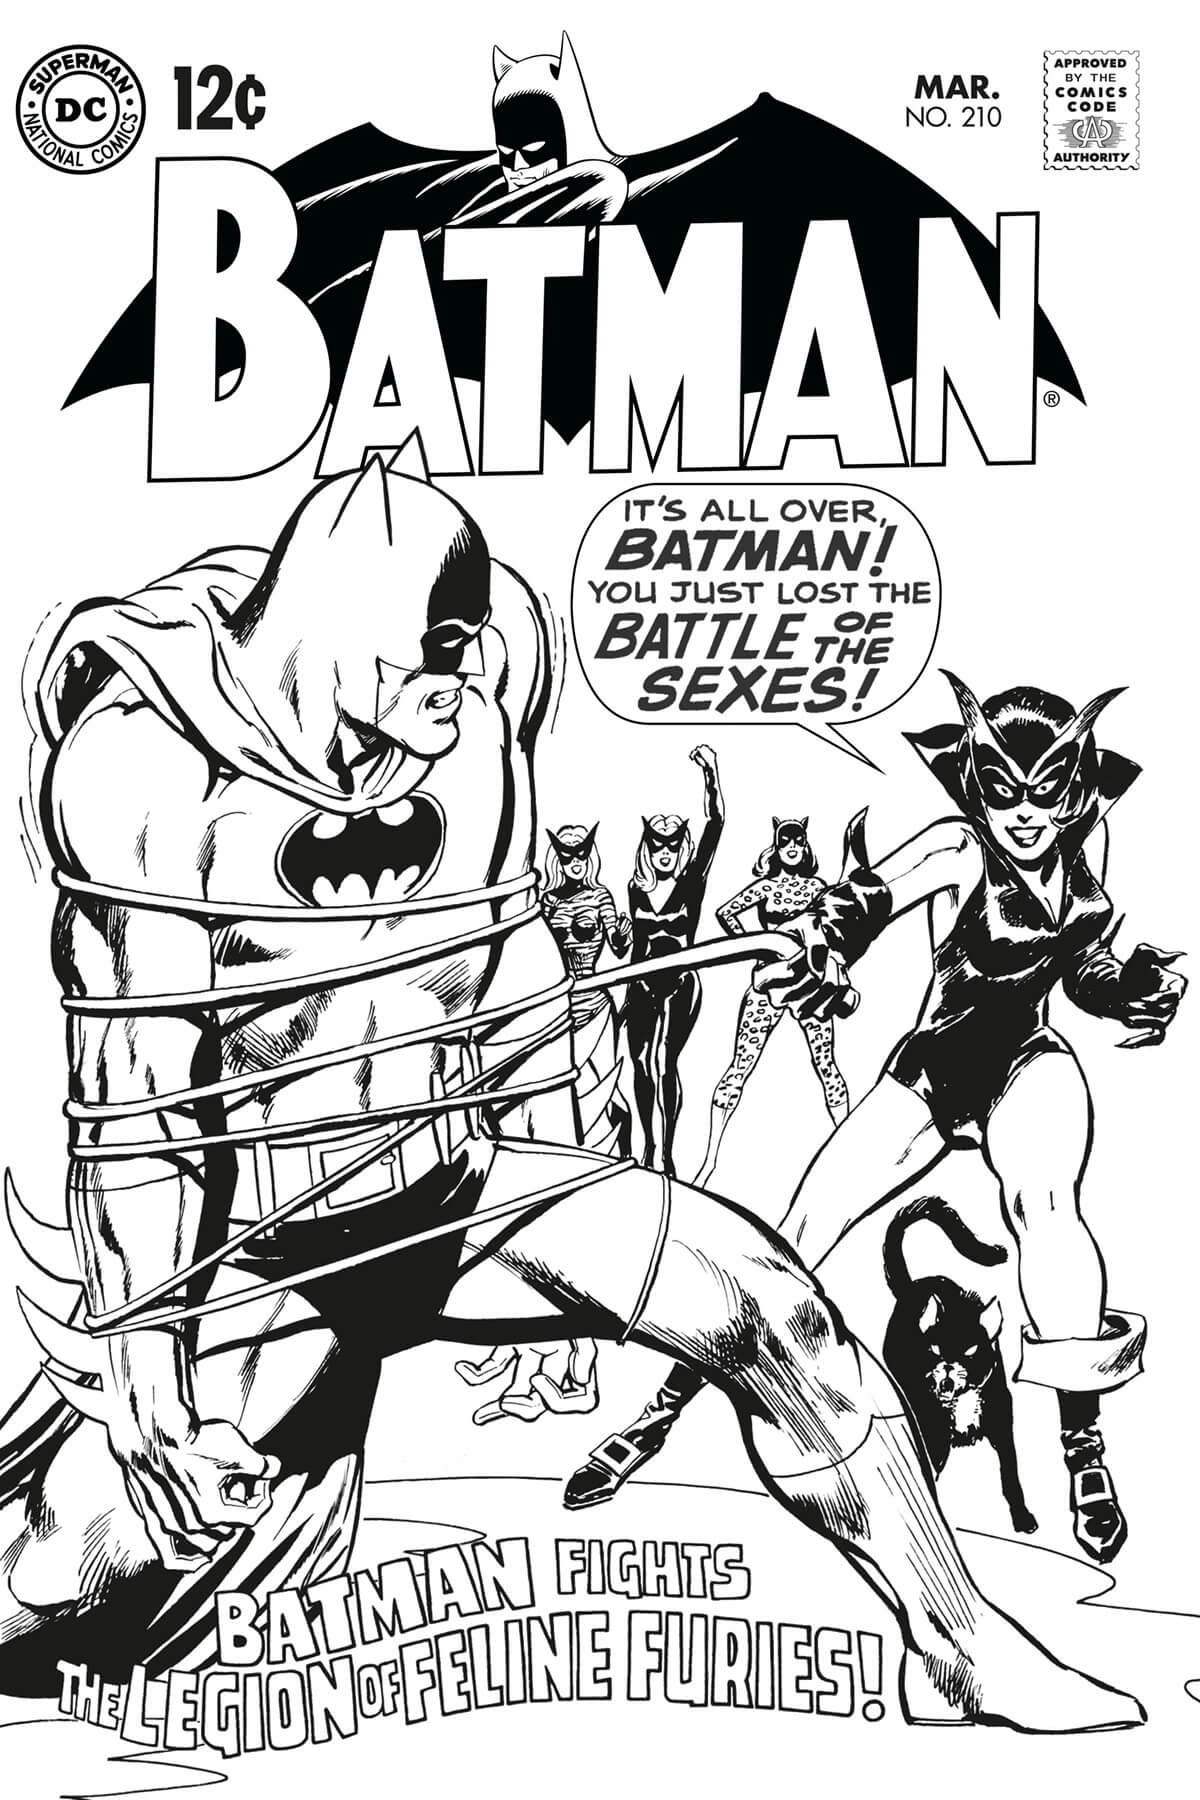 Batman 210 Cover Restoration by Scott Dutton